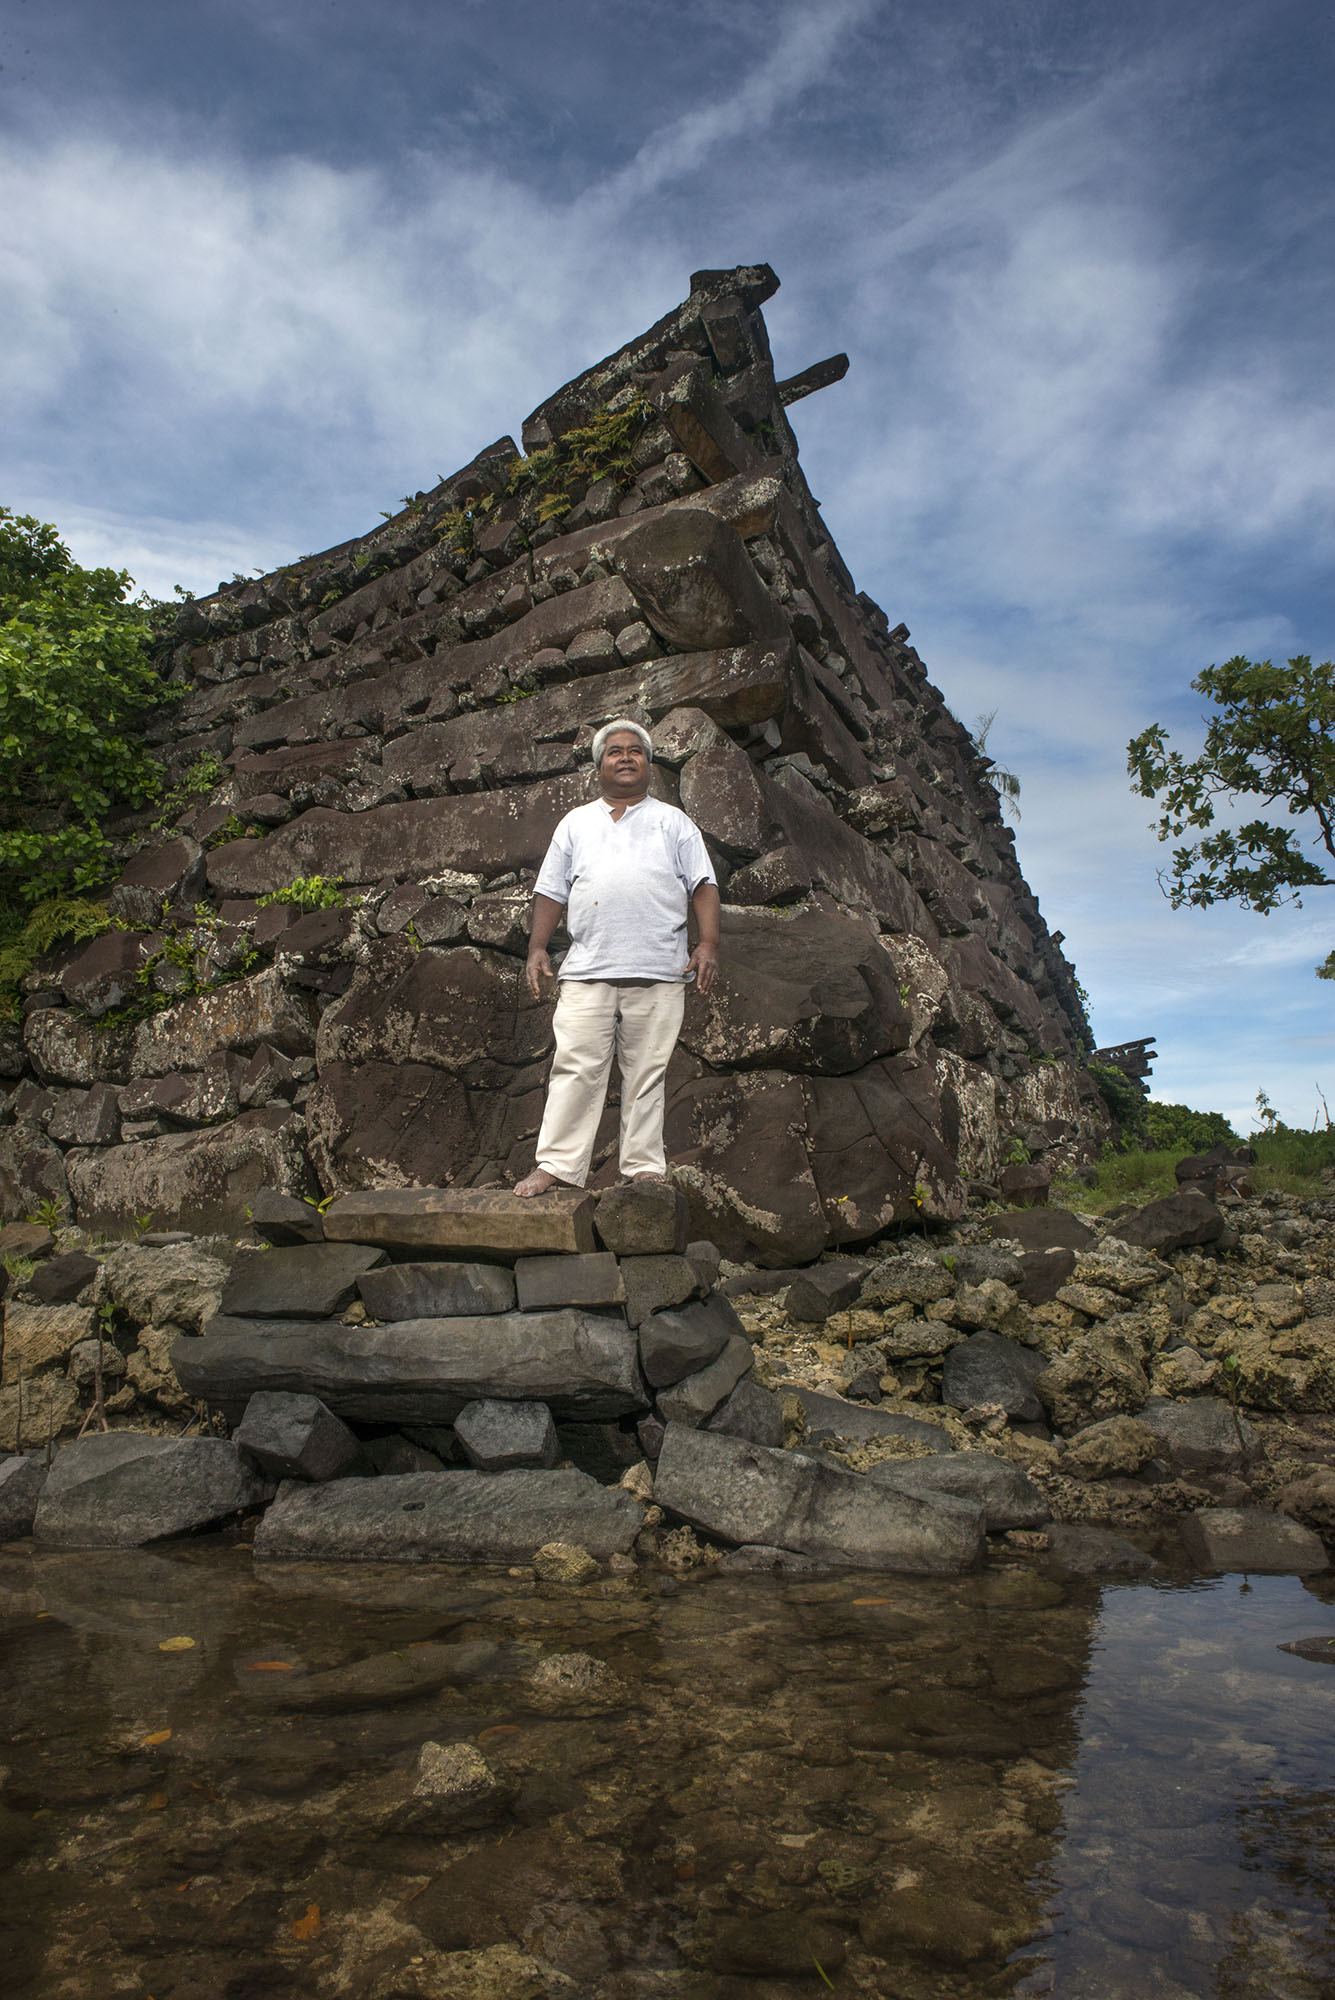 <p>Sam Saul at the the Nan Madol, located not far from his home. The ruined city is on the eastern shore of Pohnpei and was the capital of the Saudeleur Dynasty until the early 1600s.</p>